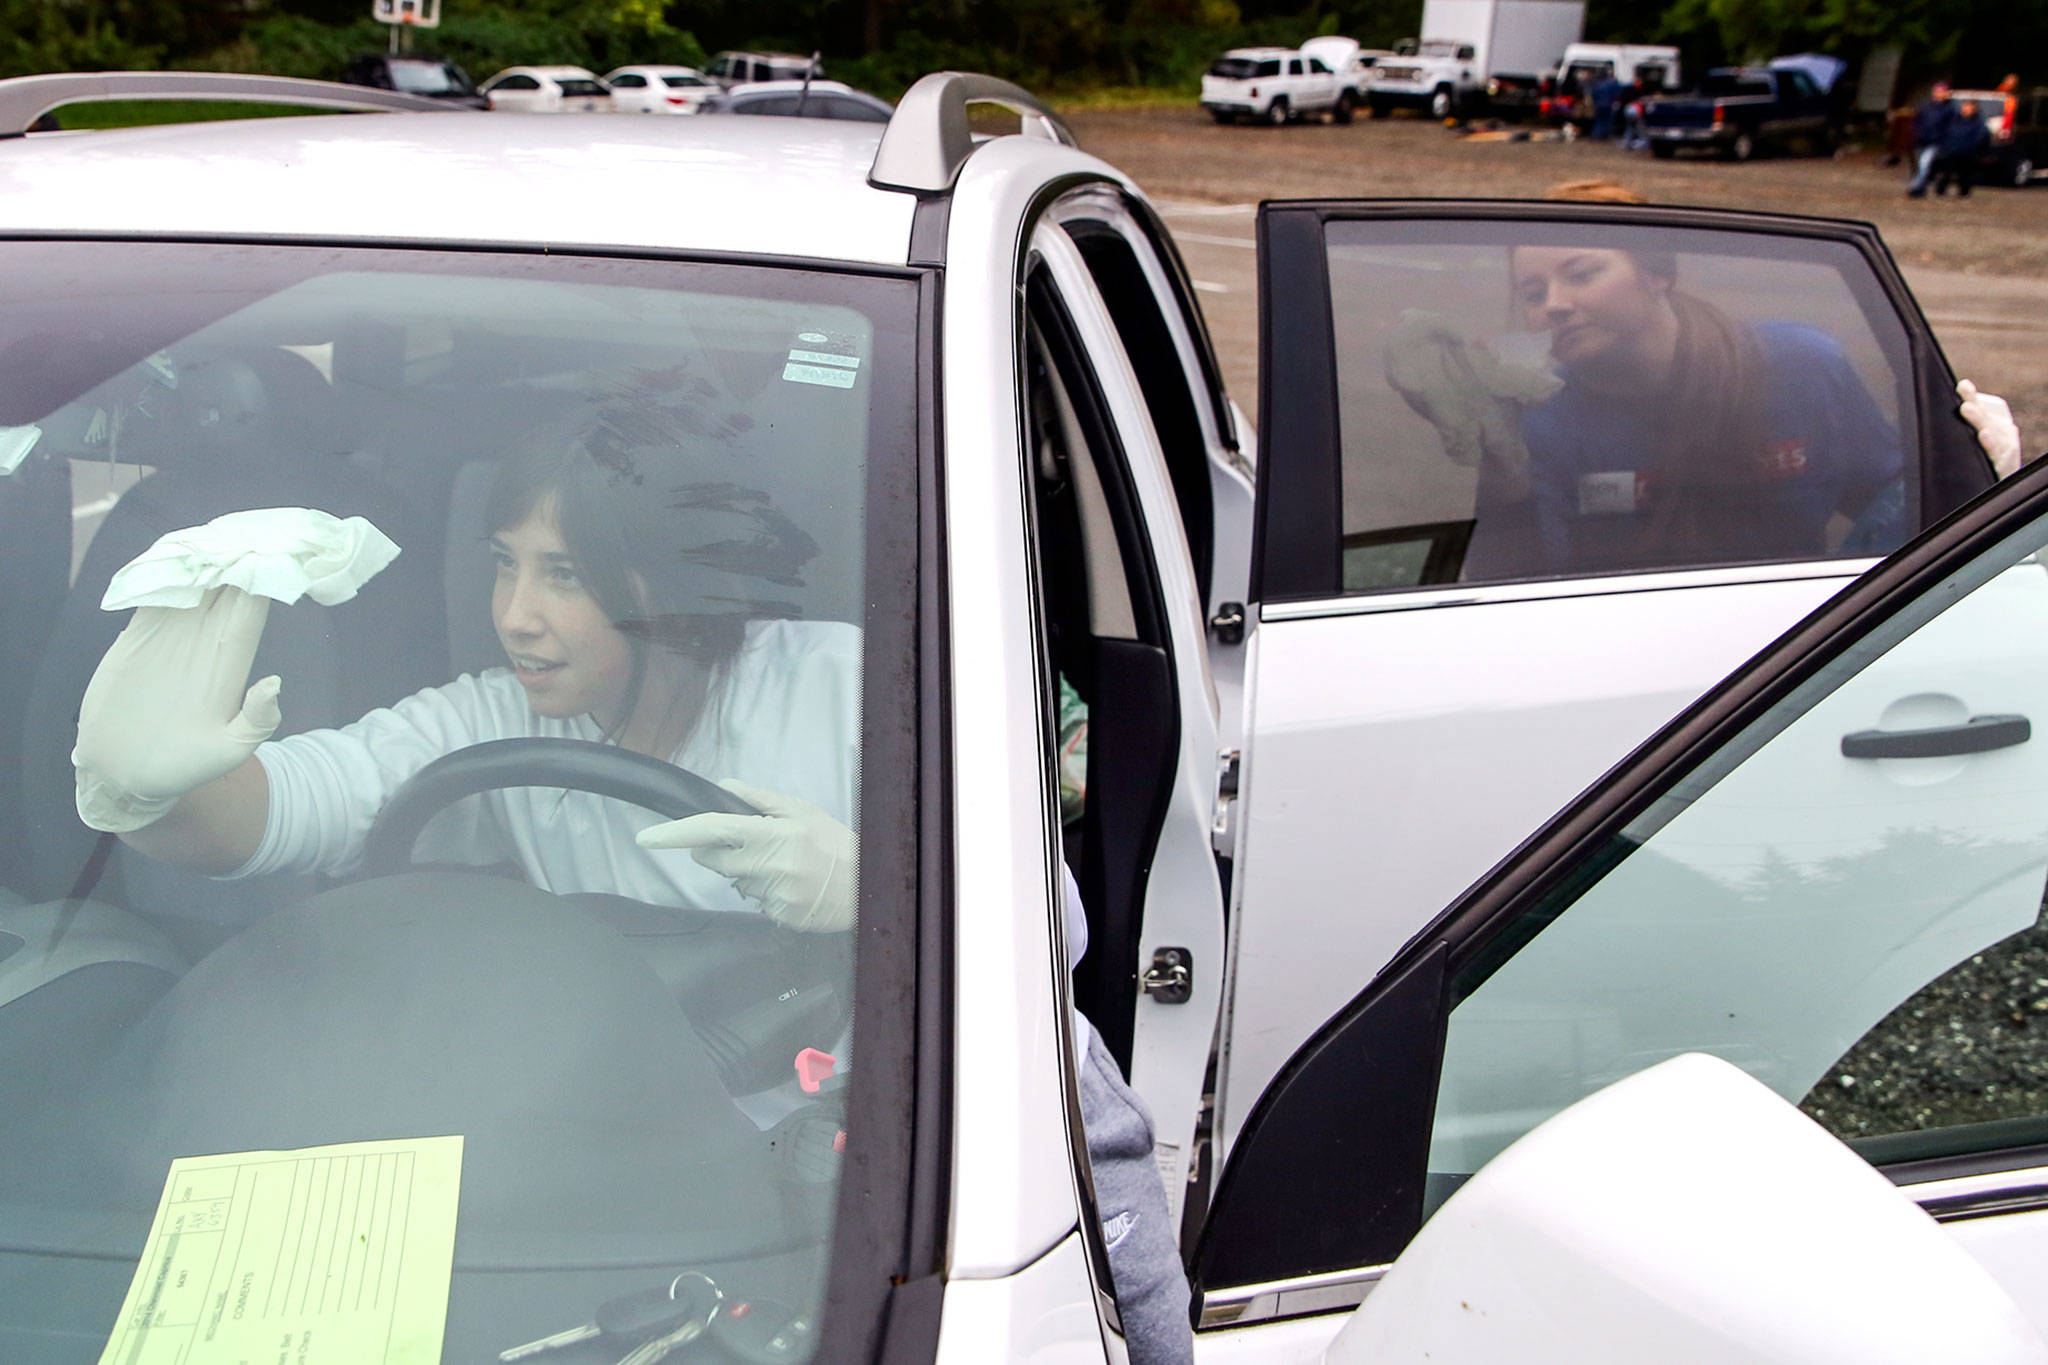 Brianna Phillips (left) and Shelby Lyon detail a car at View Church in Snohomish. (Kevin Clark / The Herald)